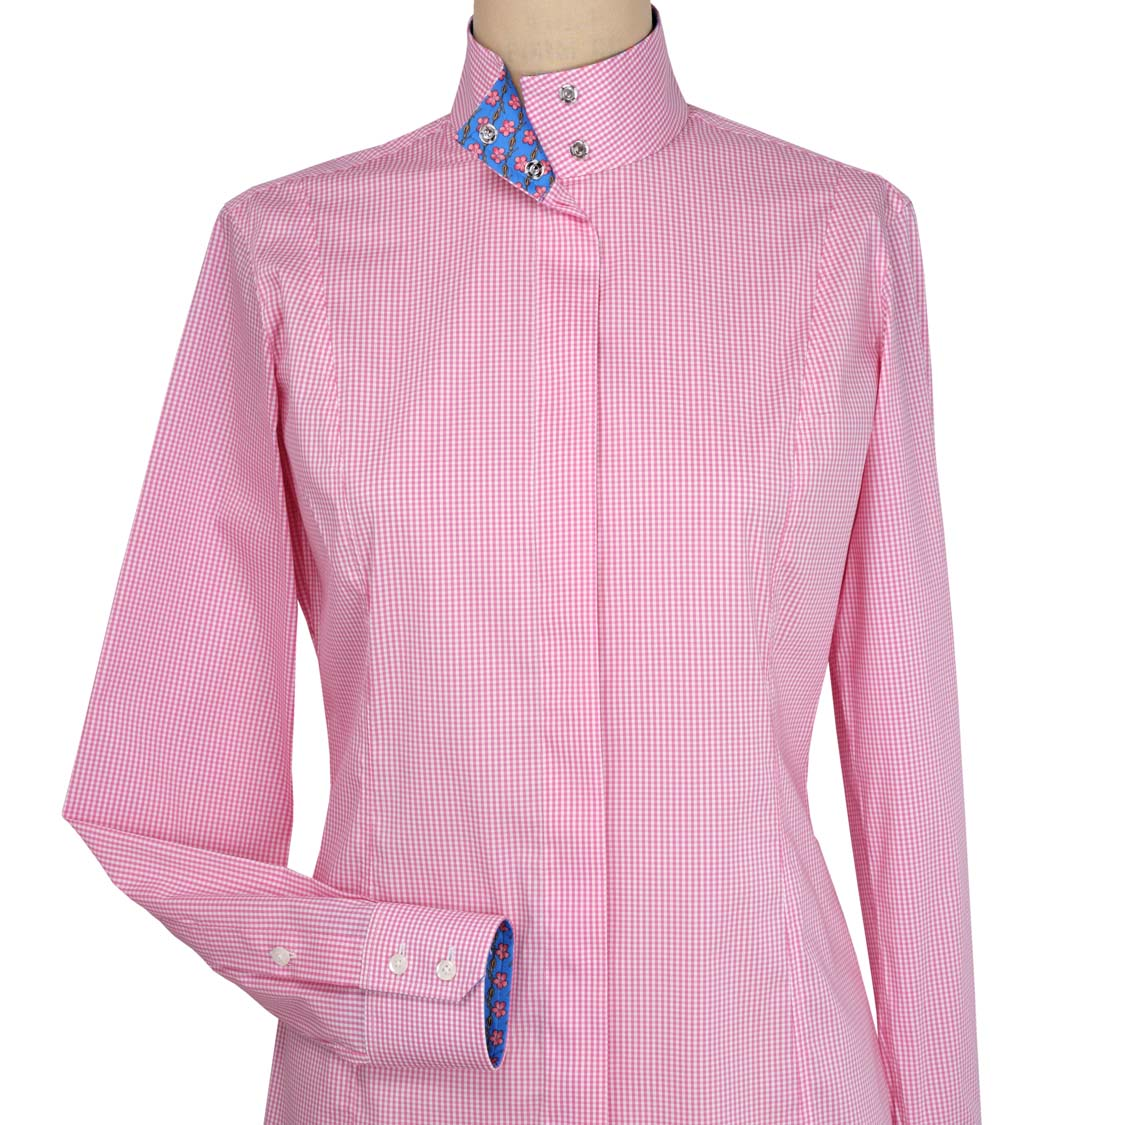 "cb970351 Isabel Pink Gingham"" Ladies Fitted Straight Collar Show Shirt ..."